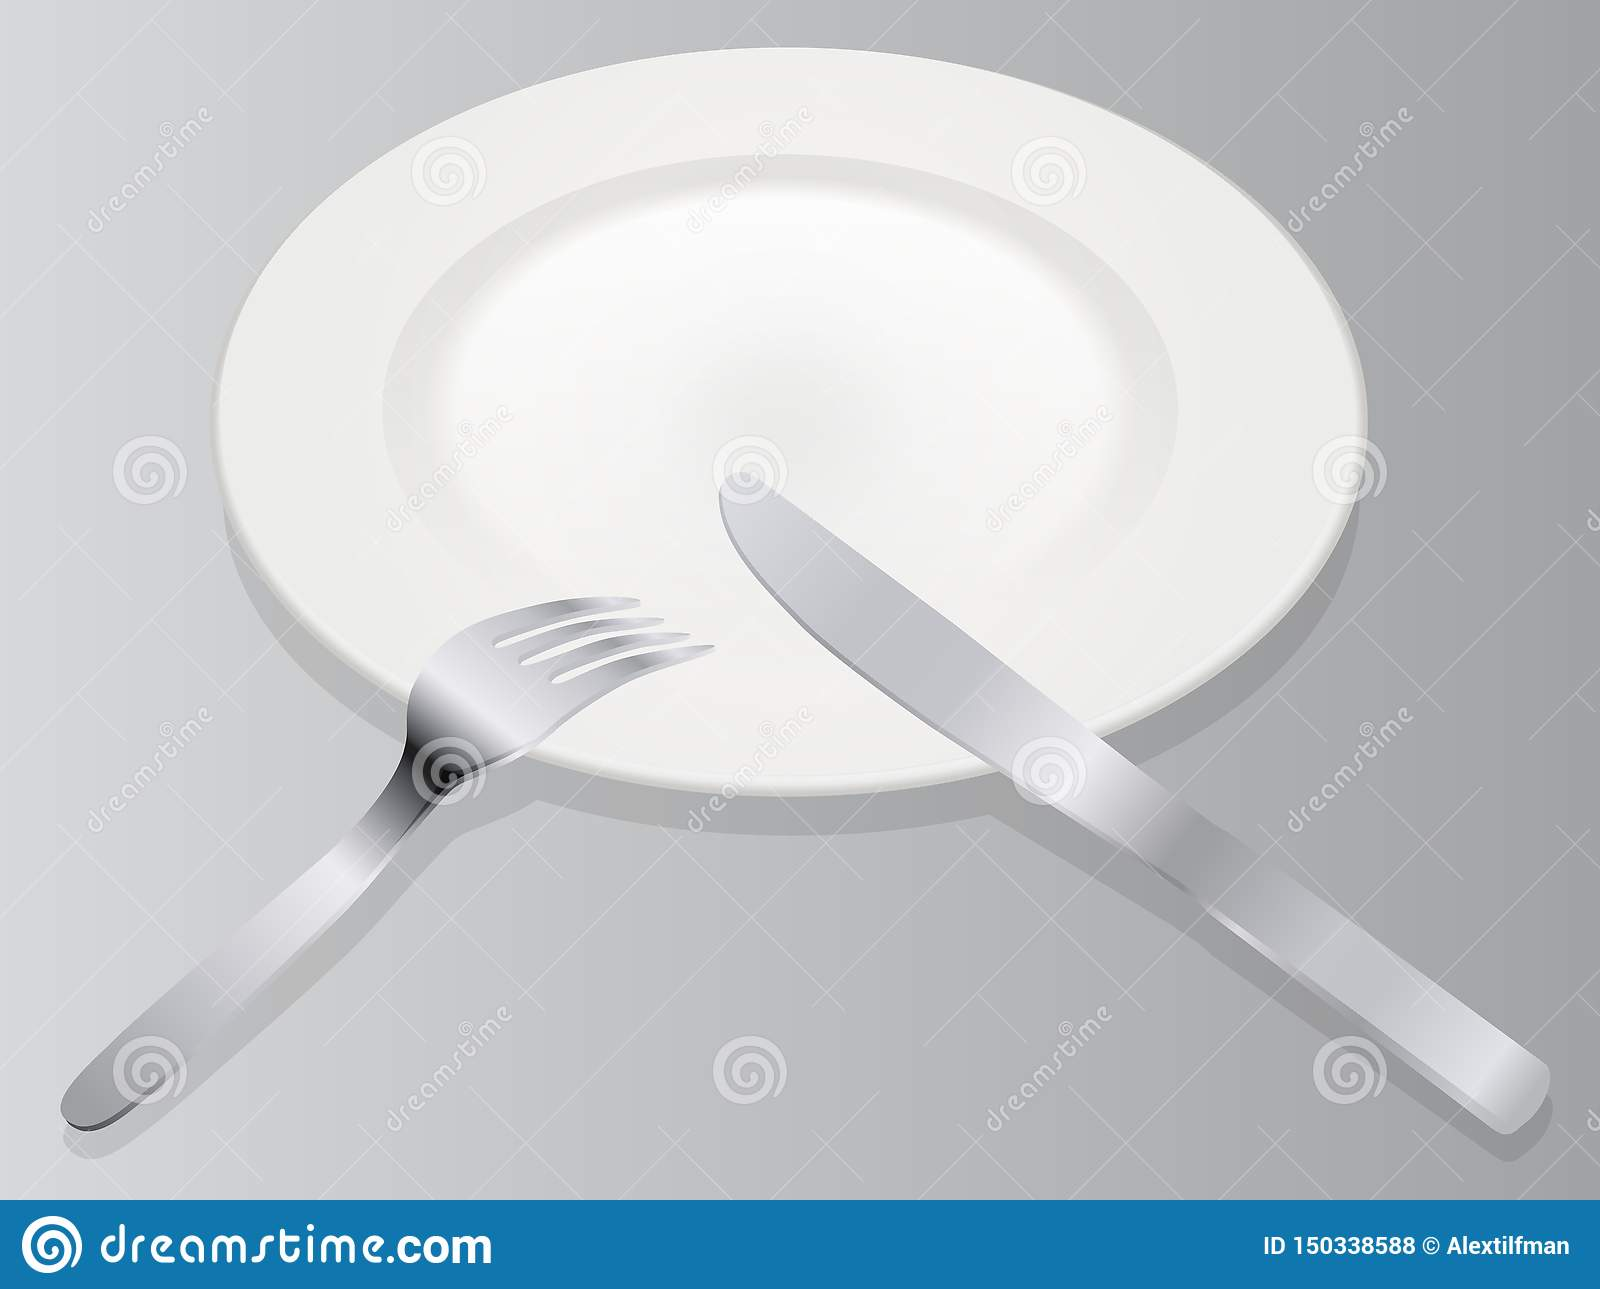 Place setting 3D vector illustration realistic empty plate with knife and fork isolated on gray background in isometric view on se